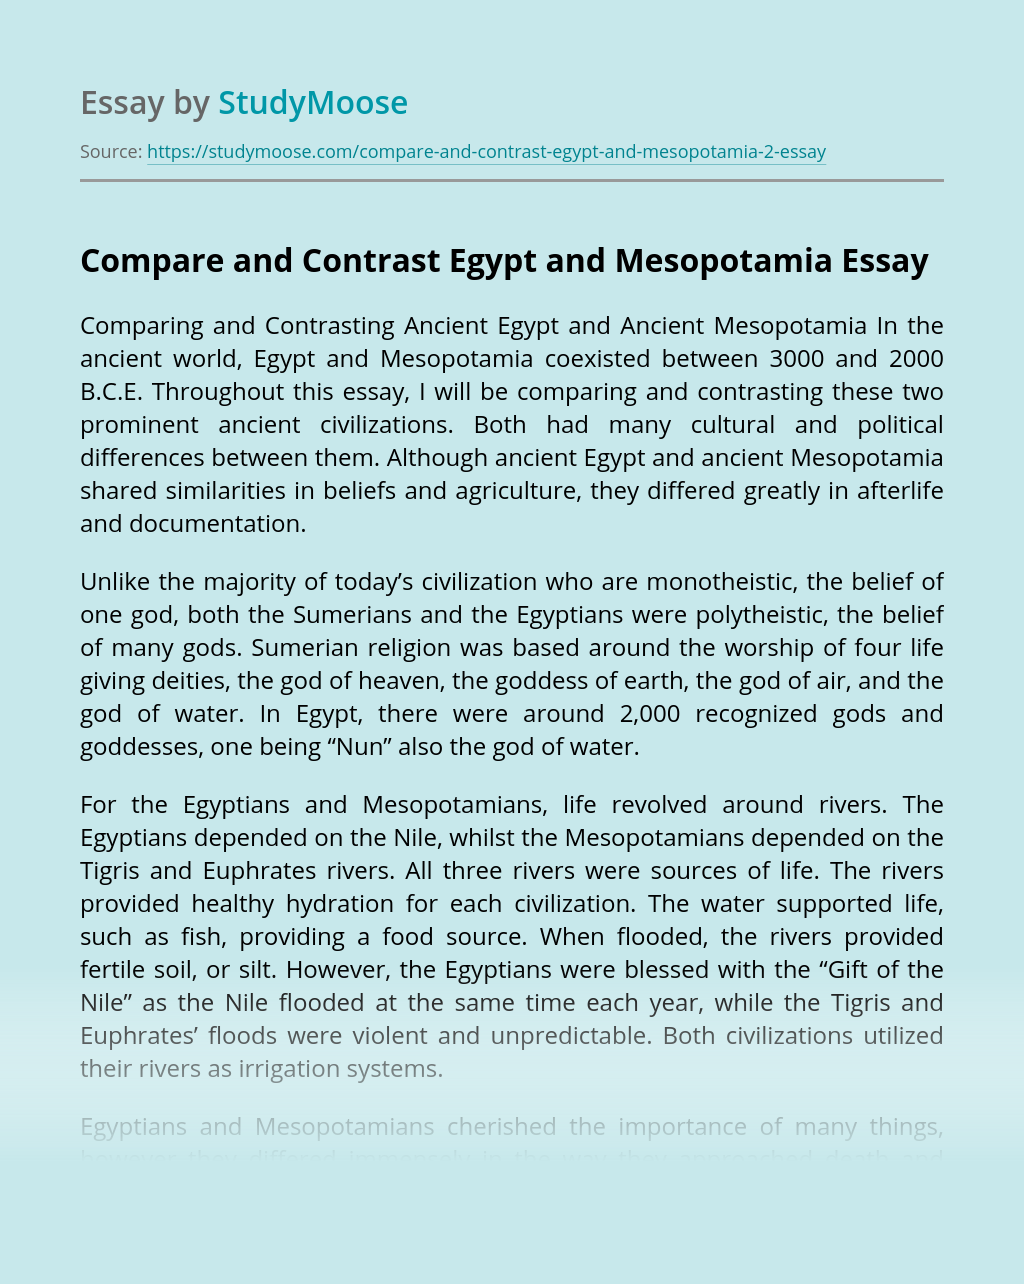 Compare and Contrast Egypt and Mesopotamia